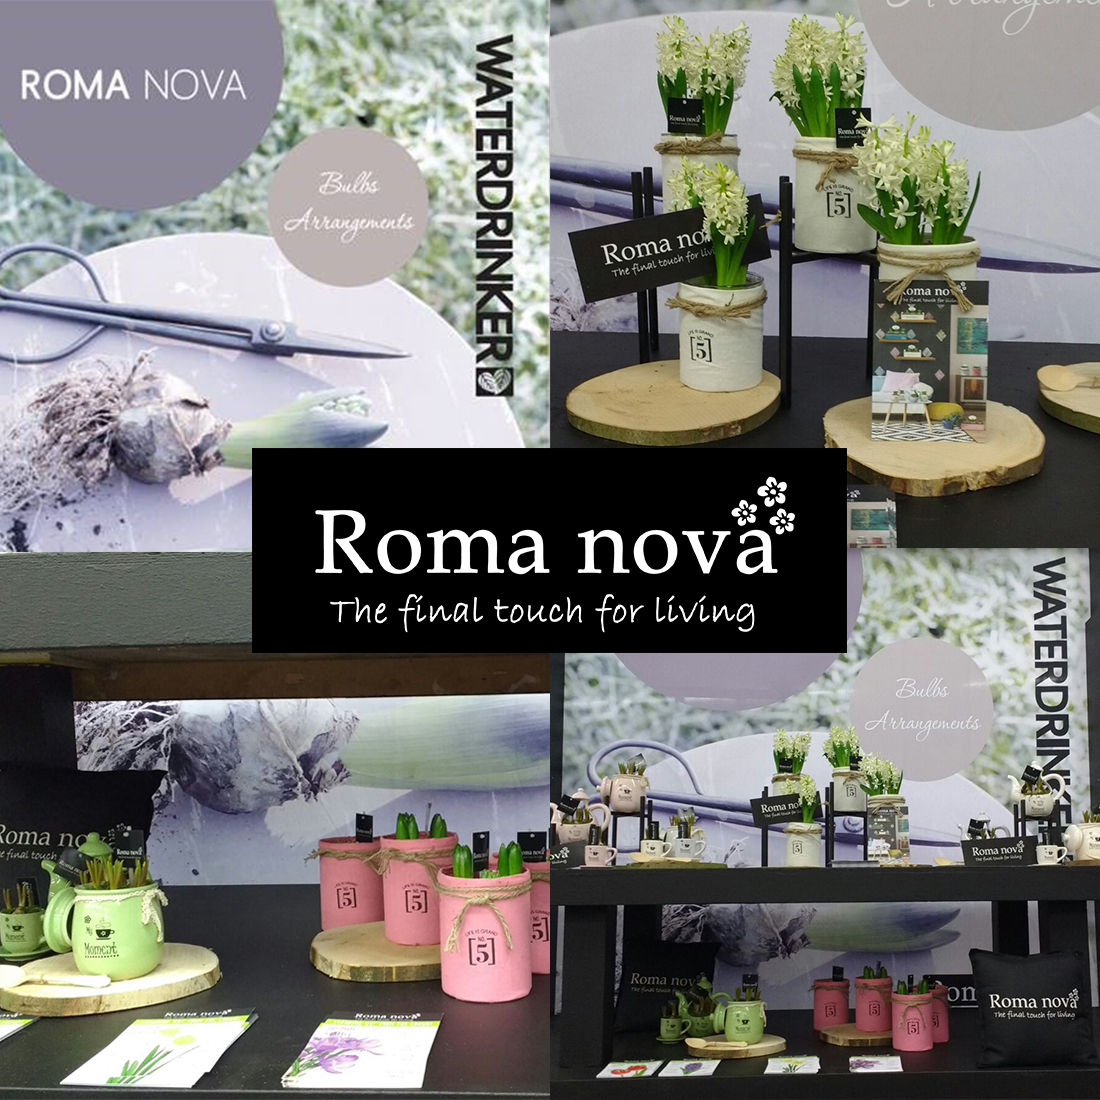 Roma_nova_Waterdrinker_collage